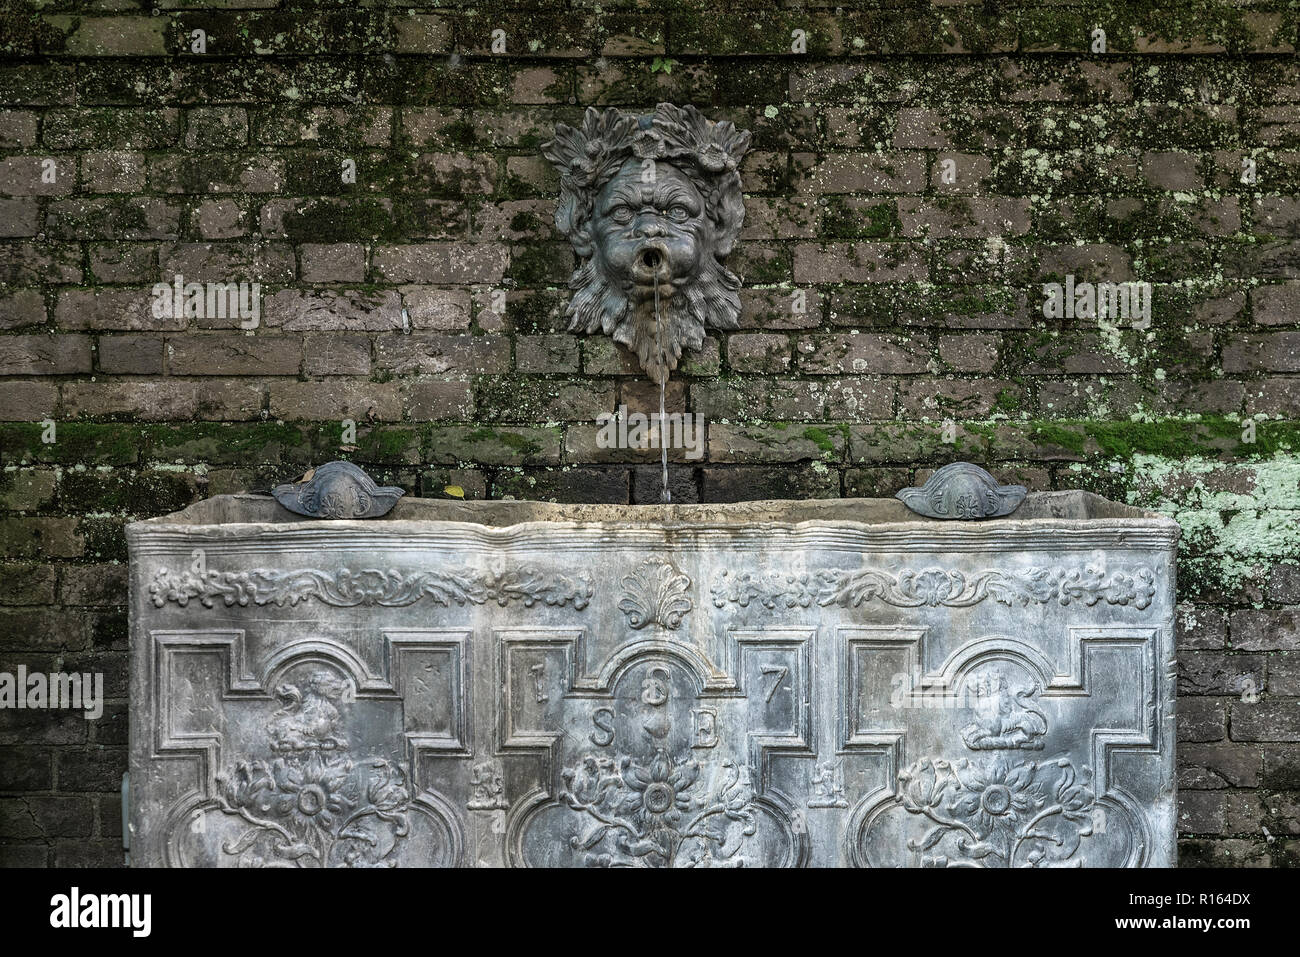 Antique garden trough, Mt. Cuba Center, Delaware, USA. - Stock Image